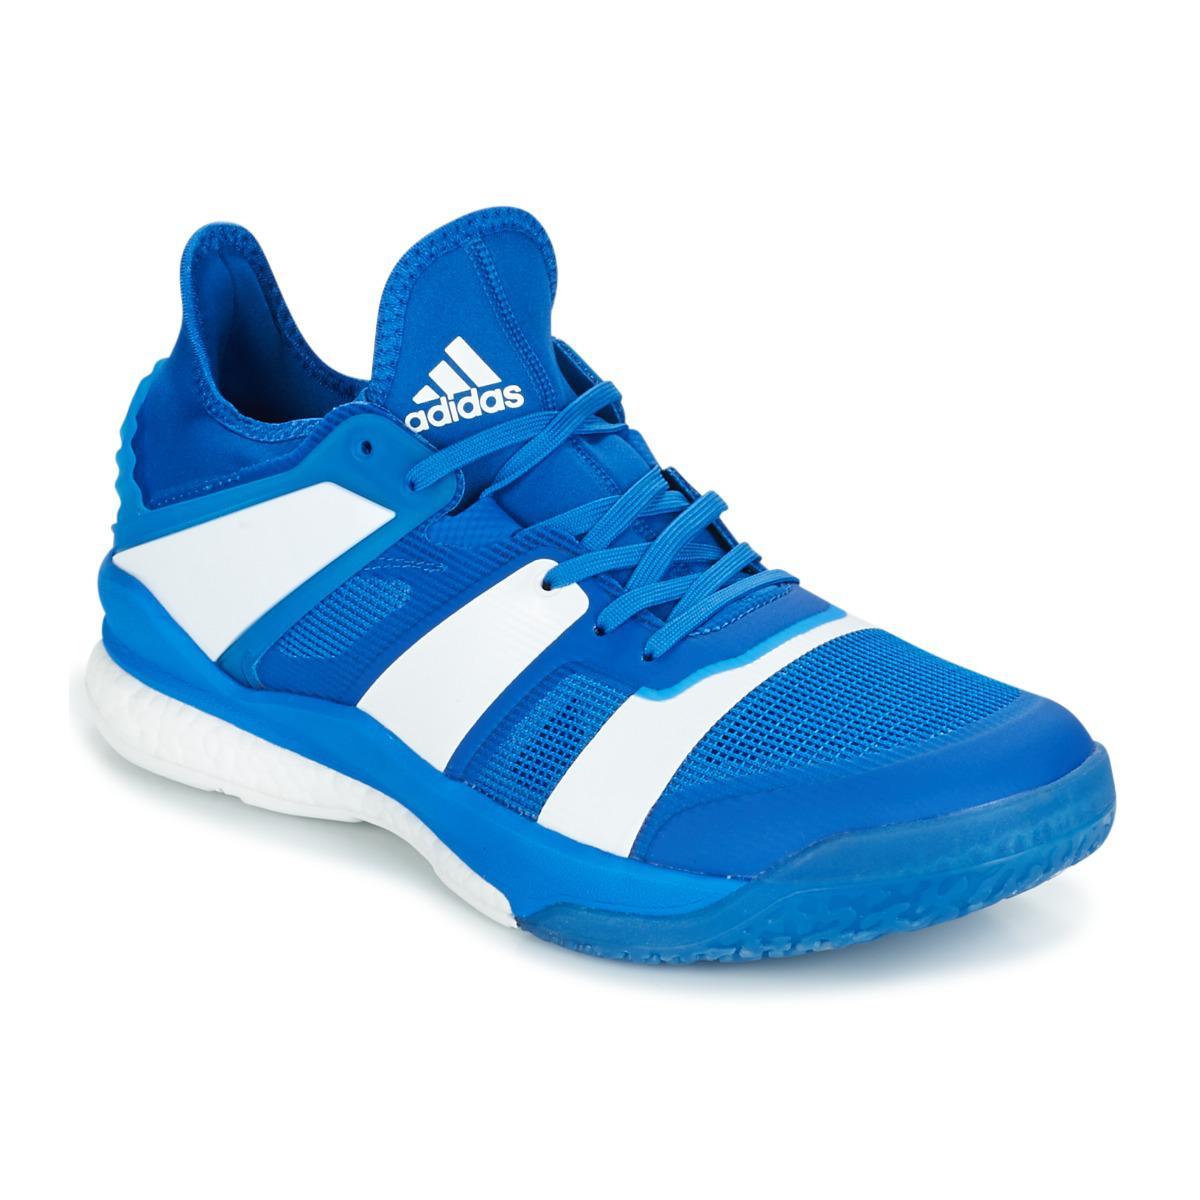 online retailer 57390 59a94 adidas Stabil X Indoor Sports Trainers (shoes) in Blue for M